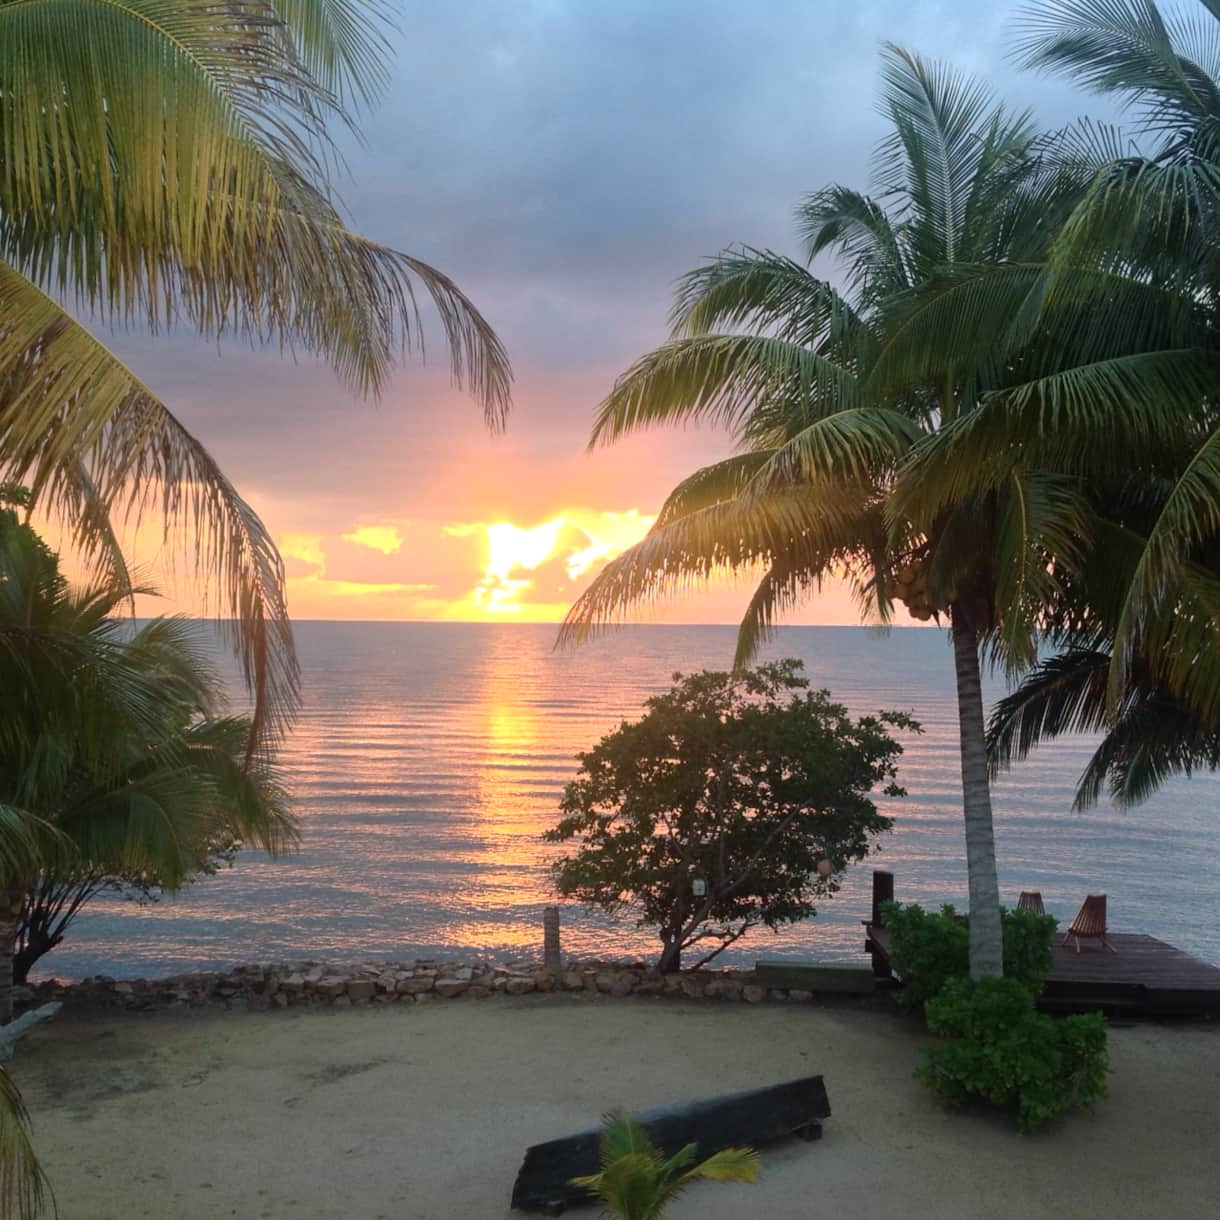 sunrise on the beach Belize